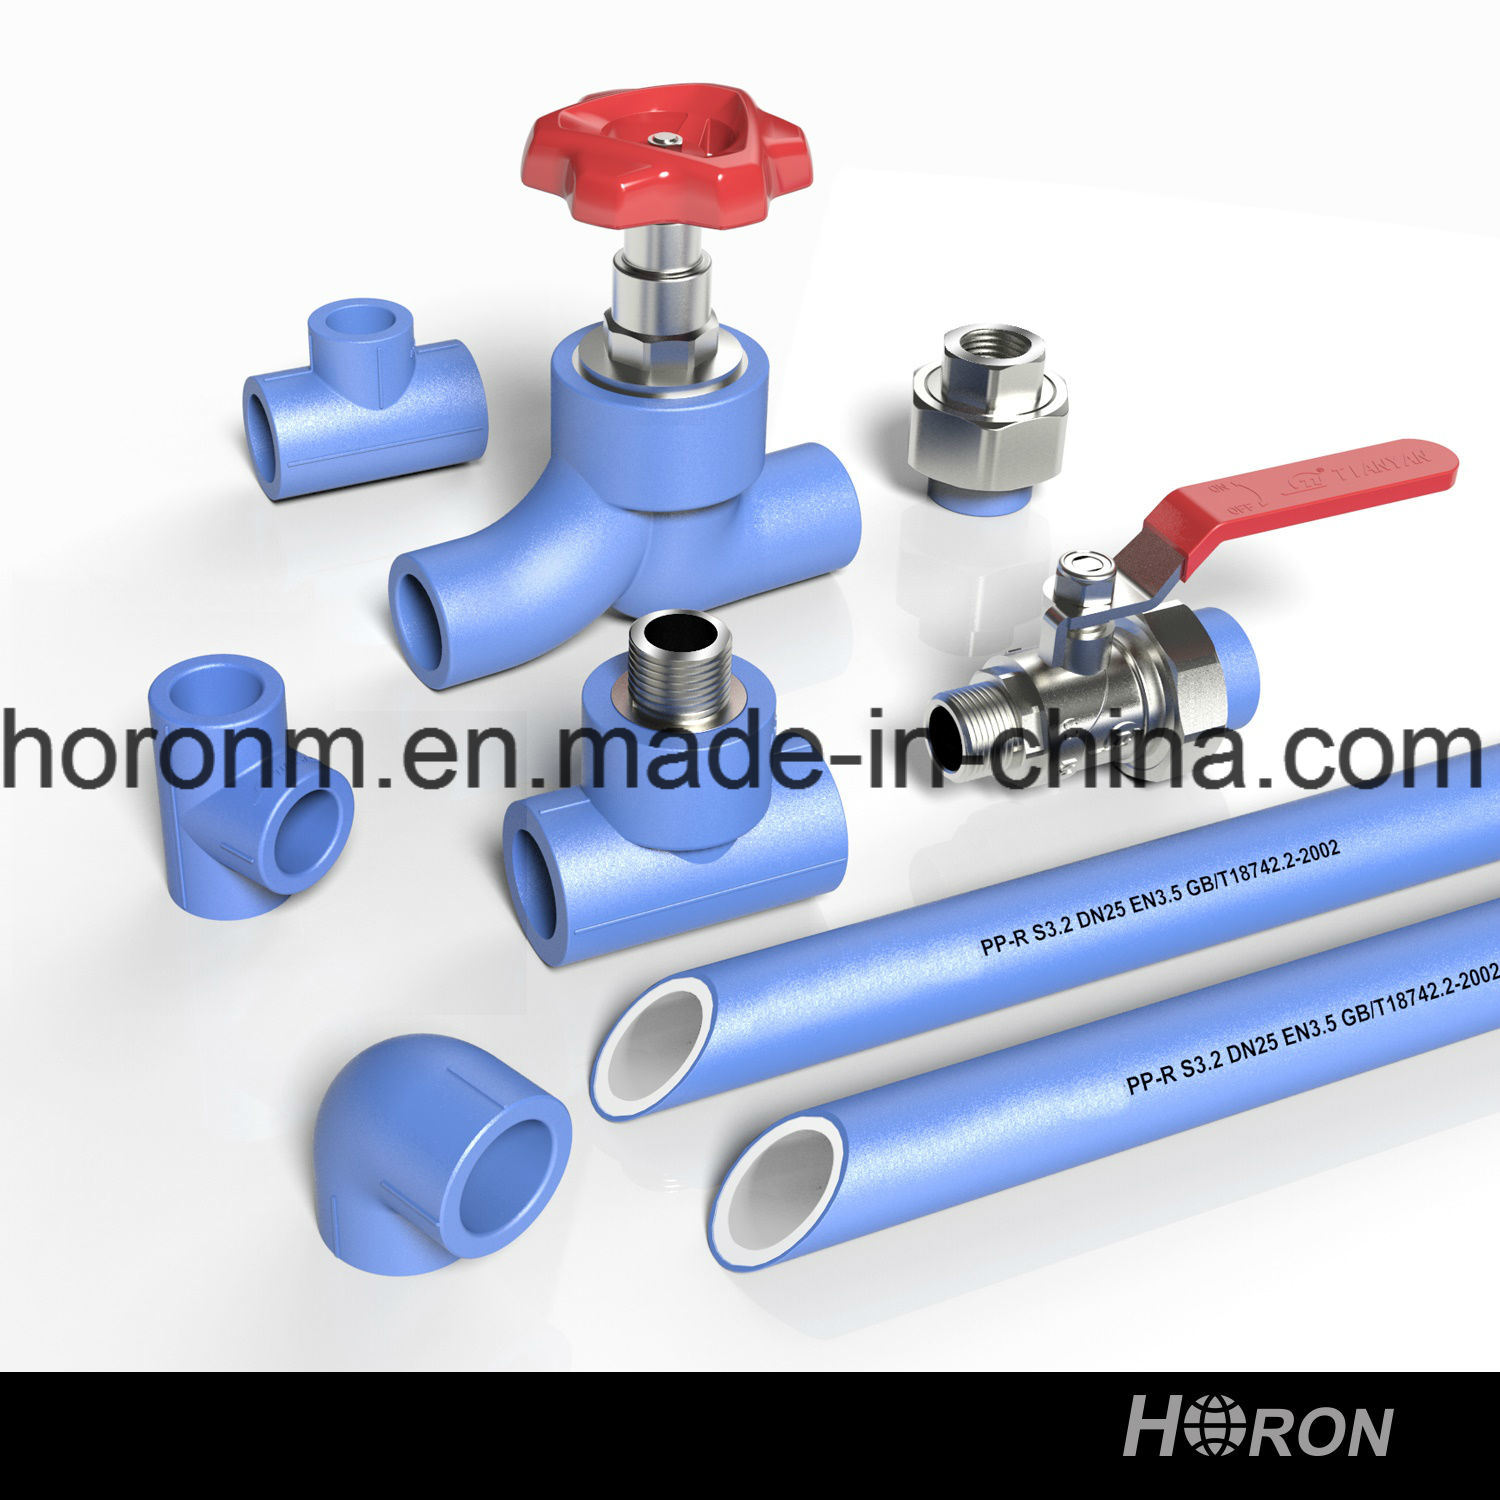 Water Pipe-PPR Fitting-PPR Copper Thread Coupling-Blue PPR Famale Thread Coupling-Thread Coupling-Famale Coupling